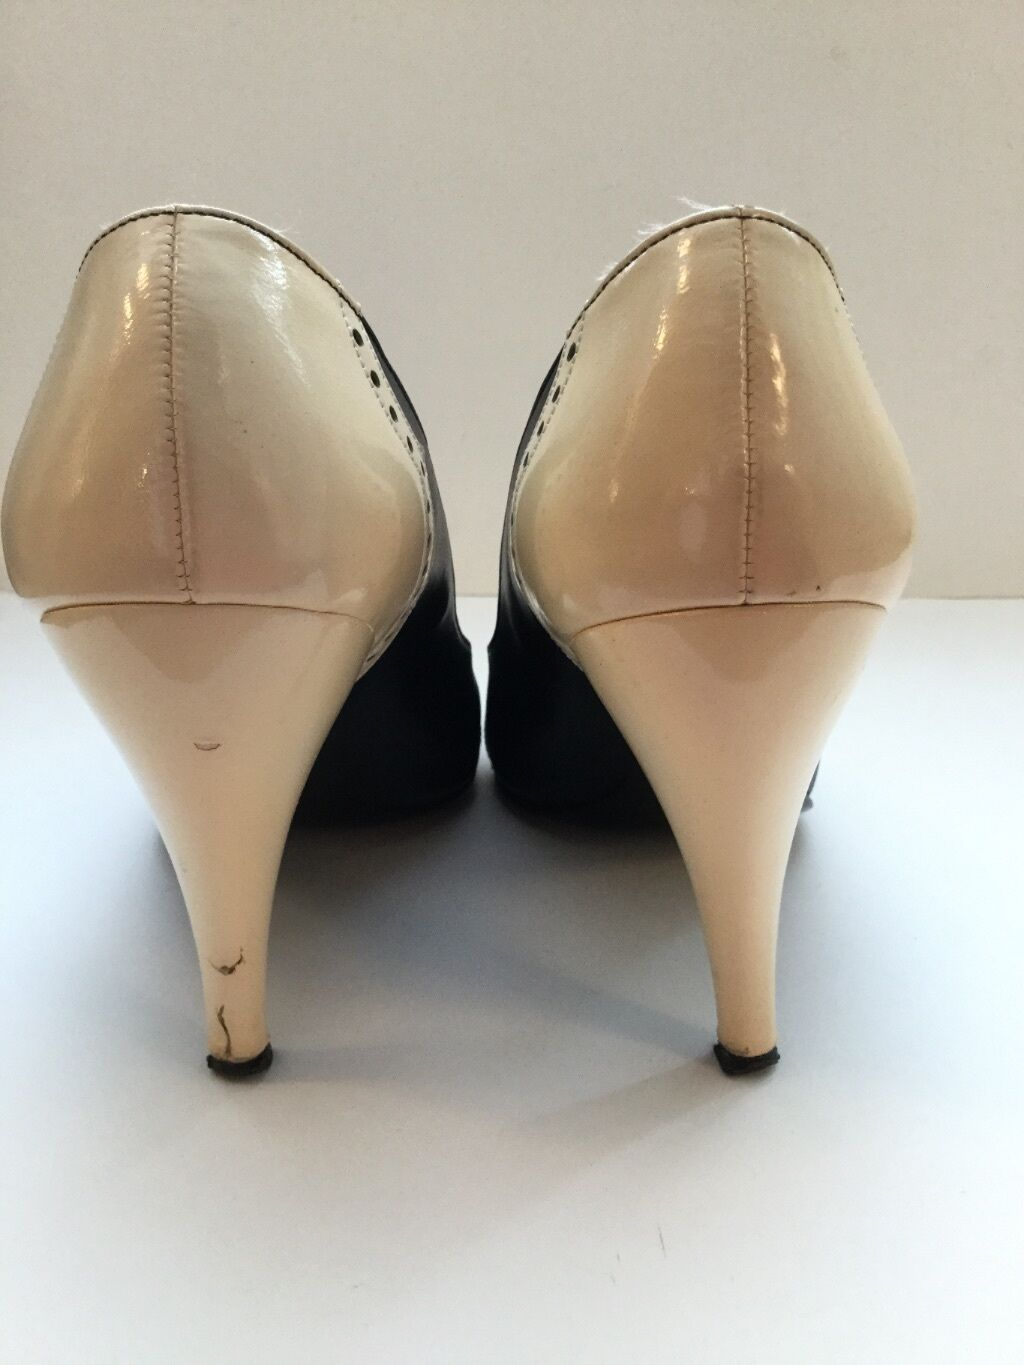 CHARLES JOURDAN CLASSIC NAVY & CREAM LEATHER HIGH HEEL COURT Schuhe BOXED